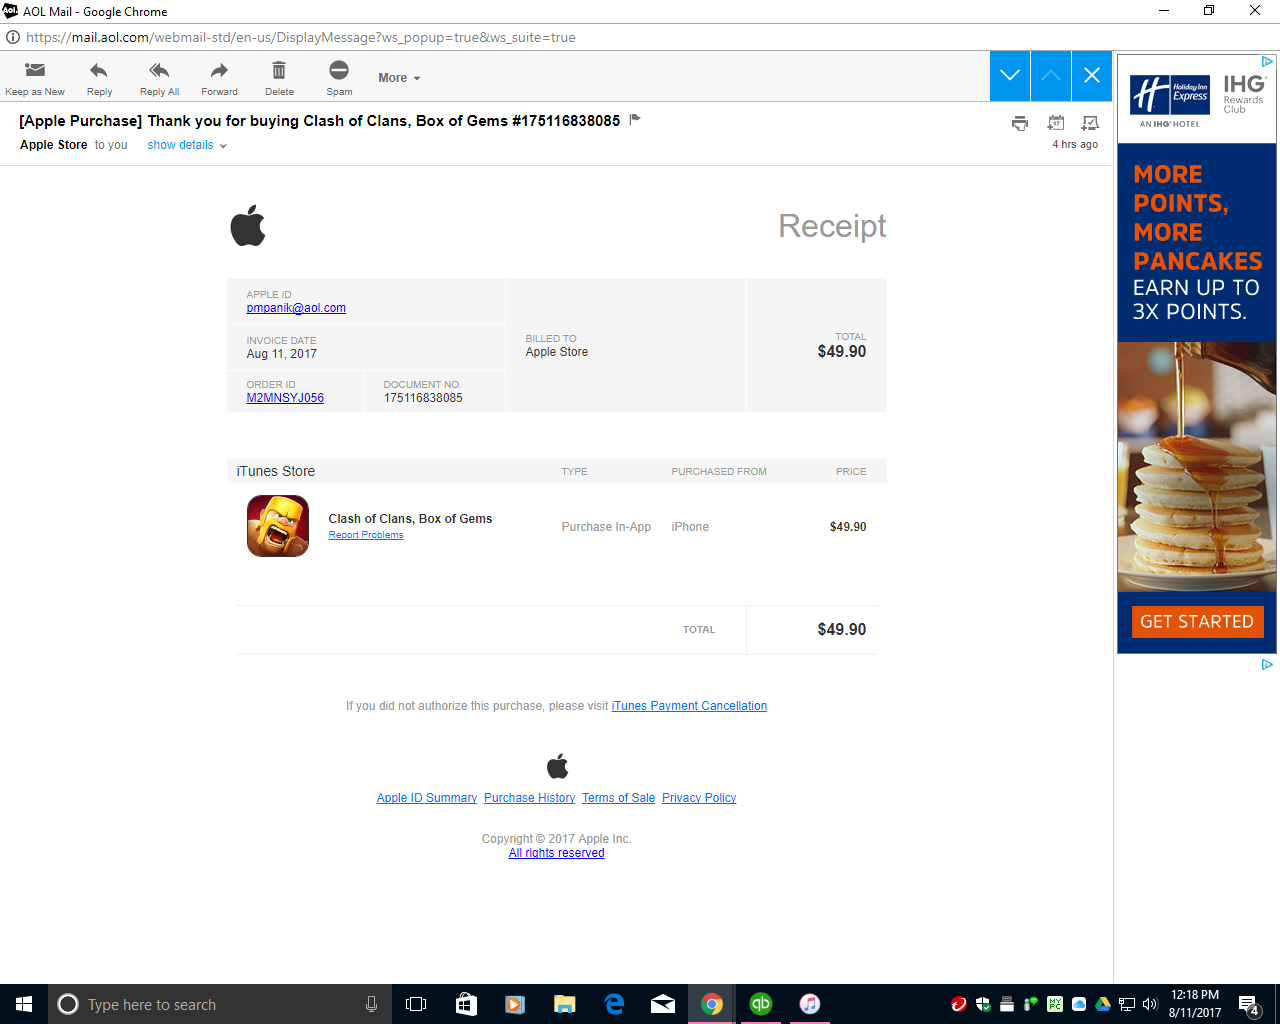 I think my account is trying to be hacked… - Apple Community